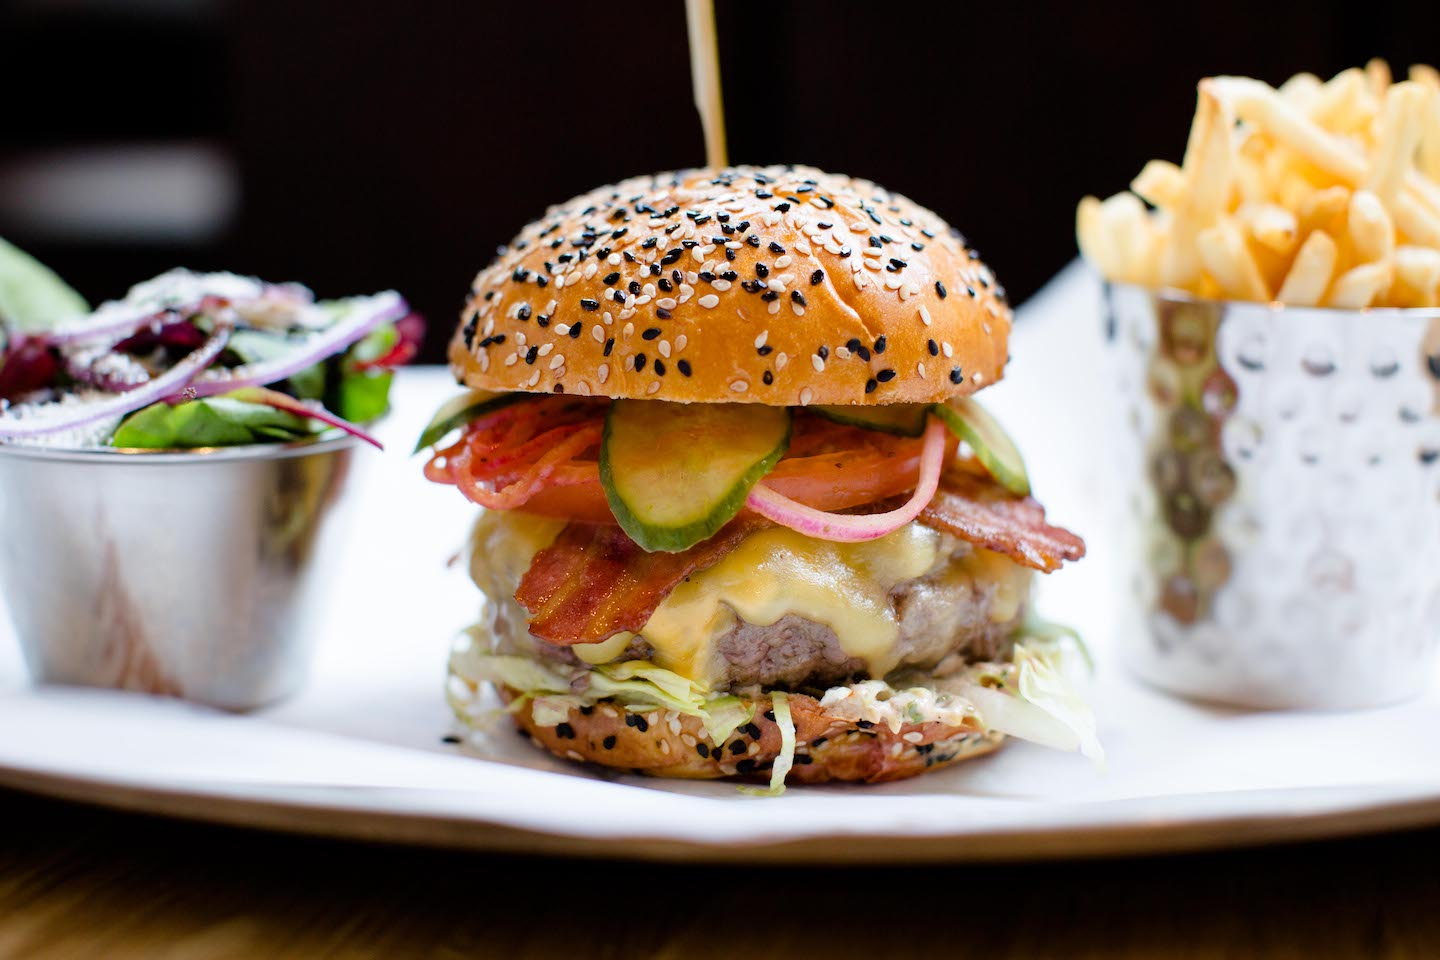 Photo: Burger & Lobster